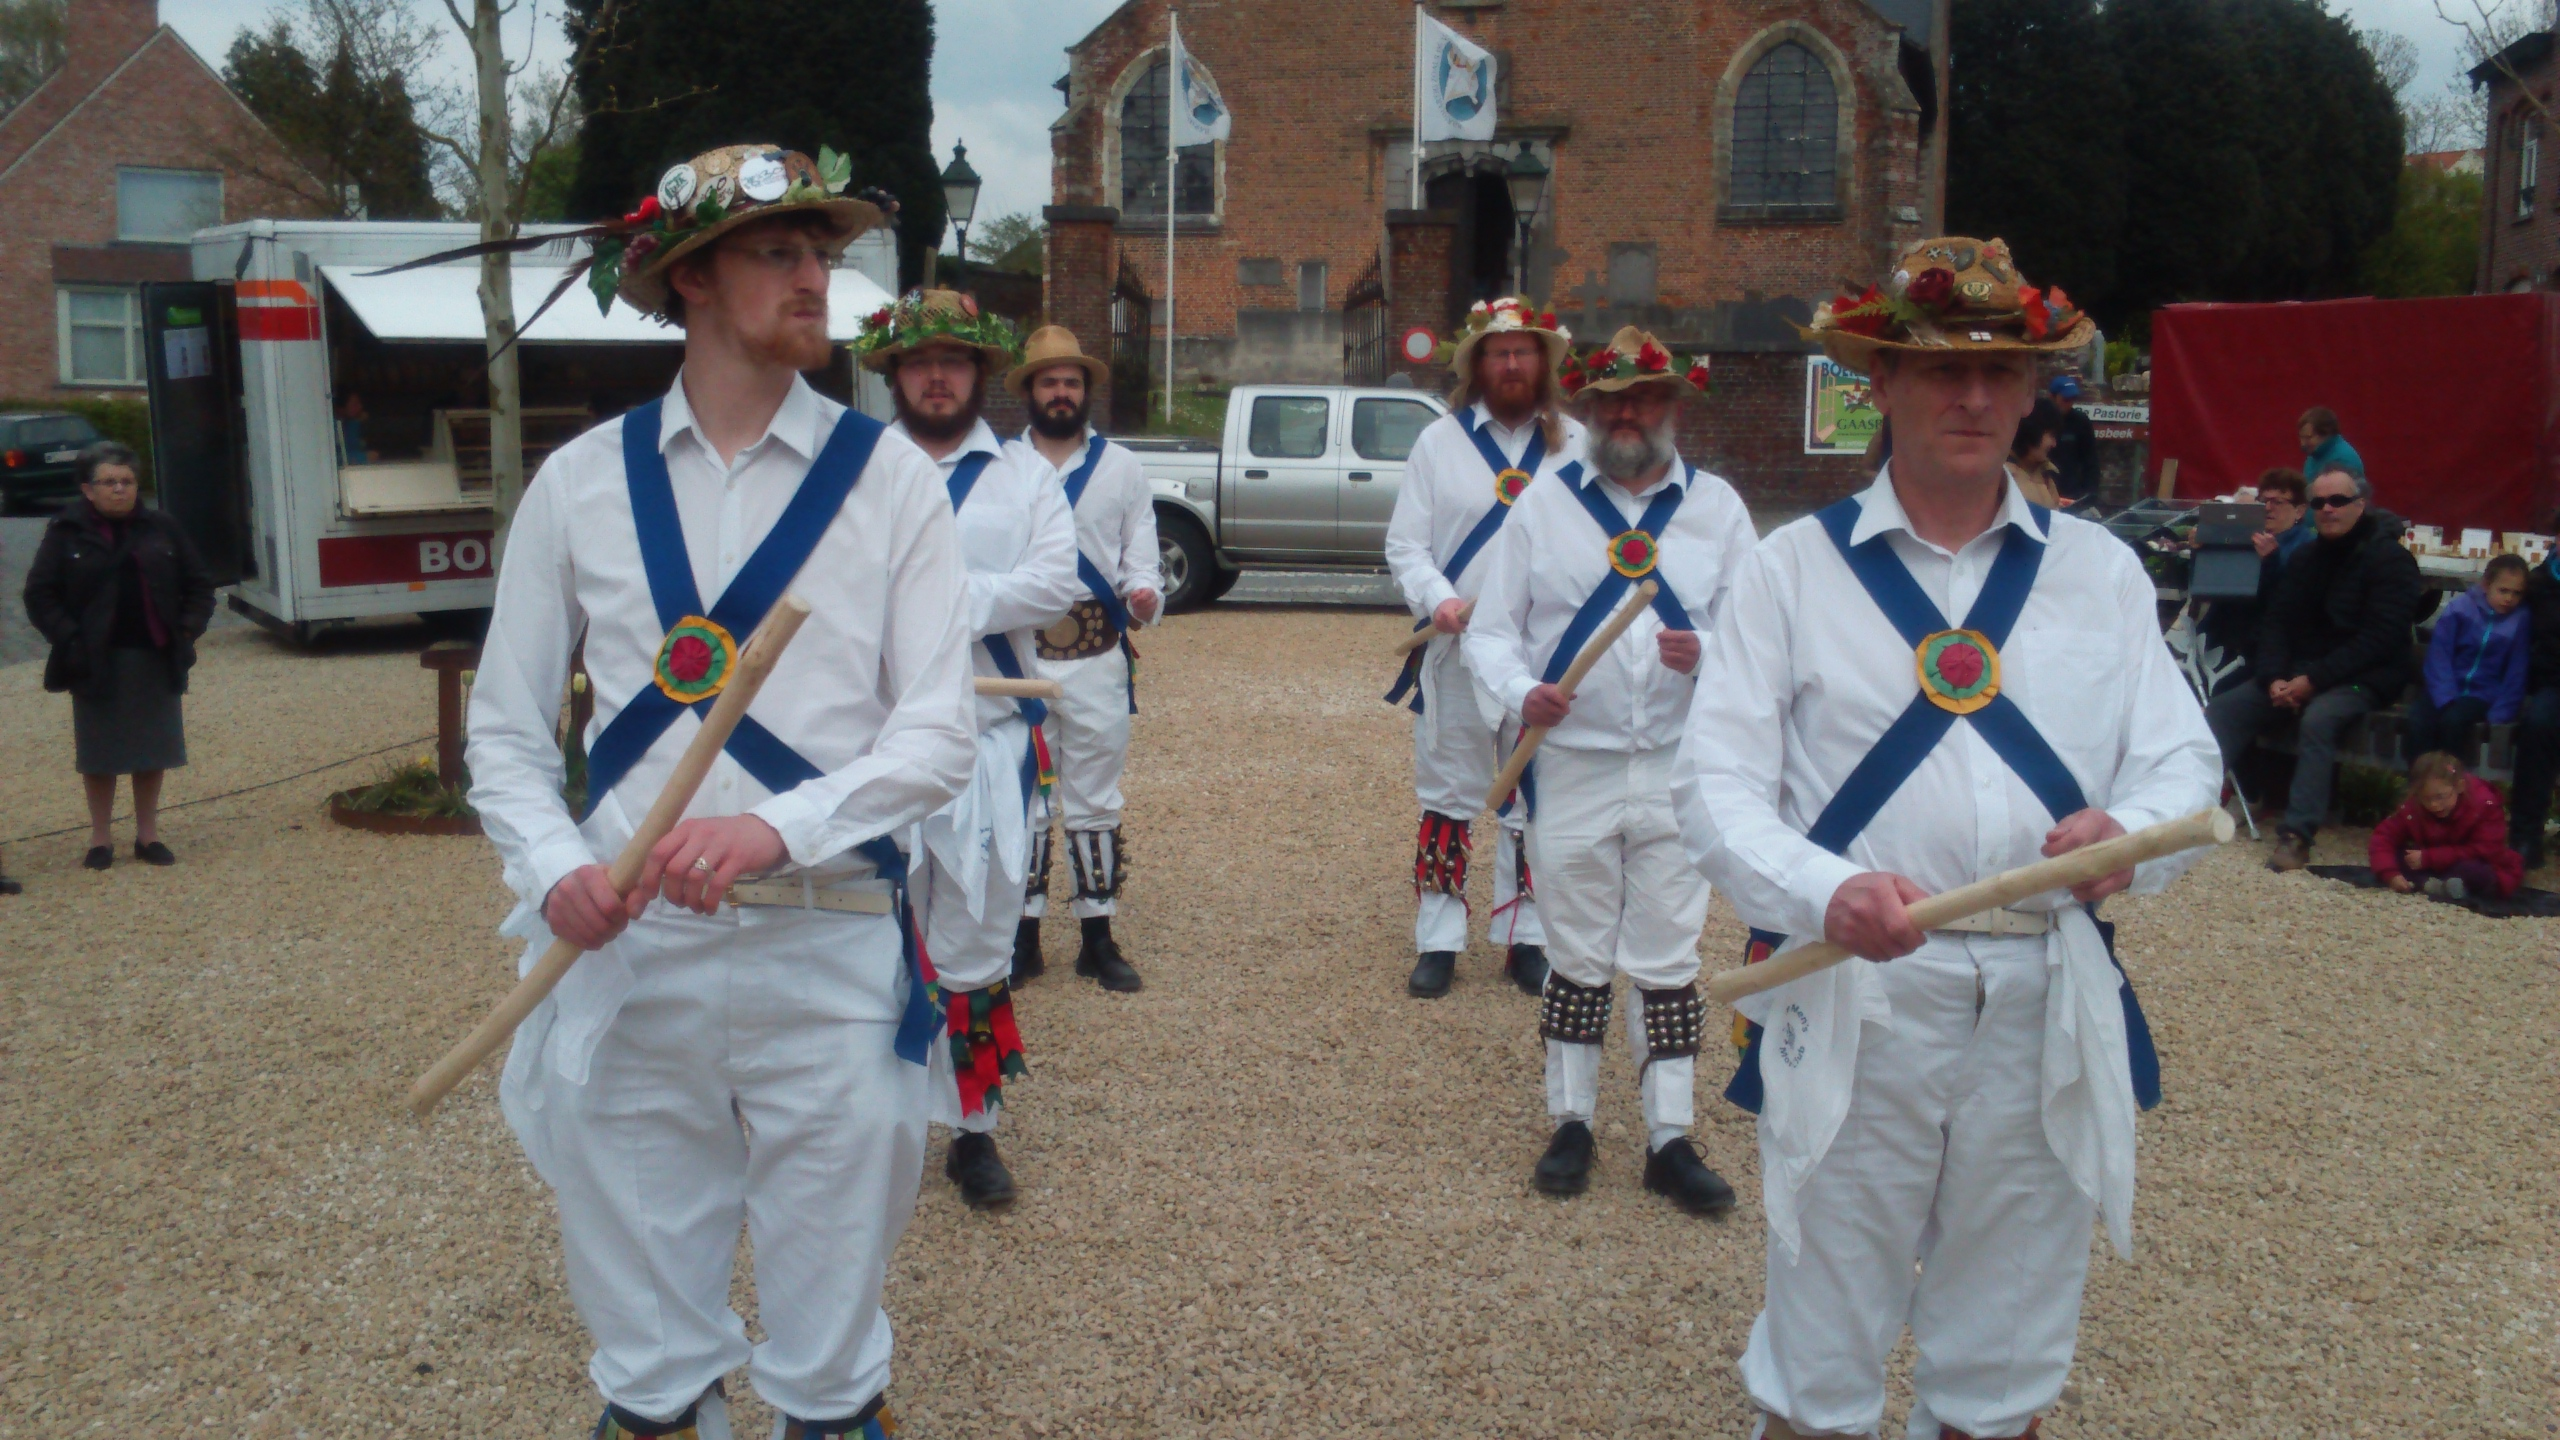 The Men Lined up Ready for Action